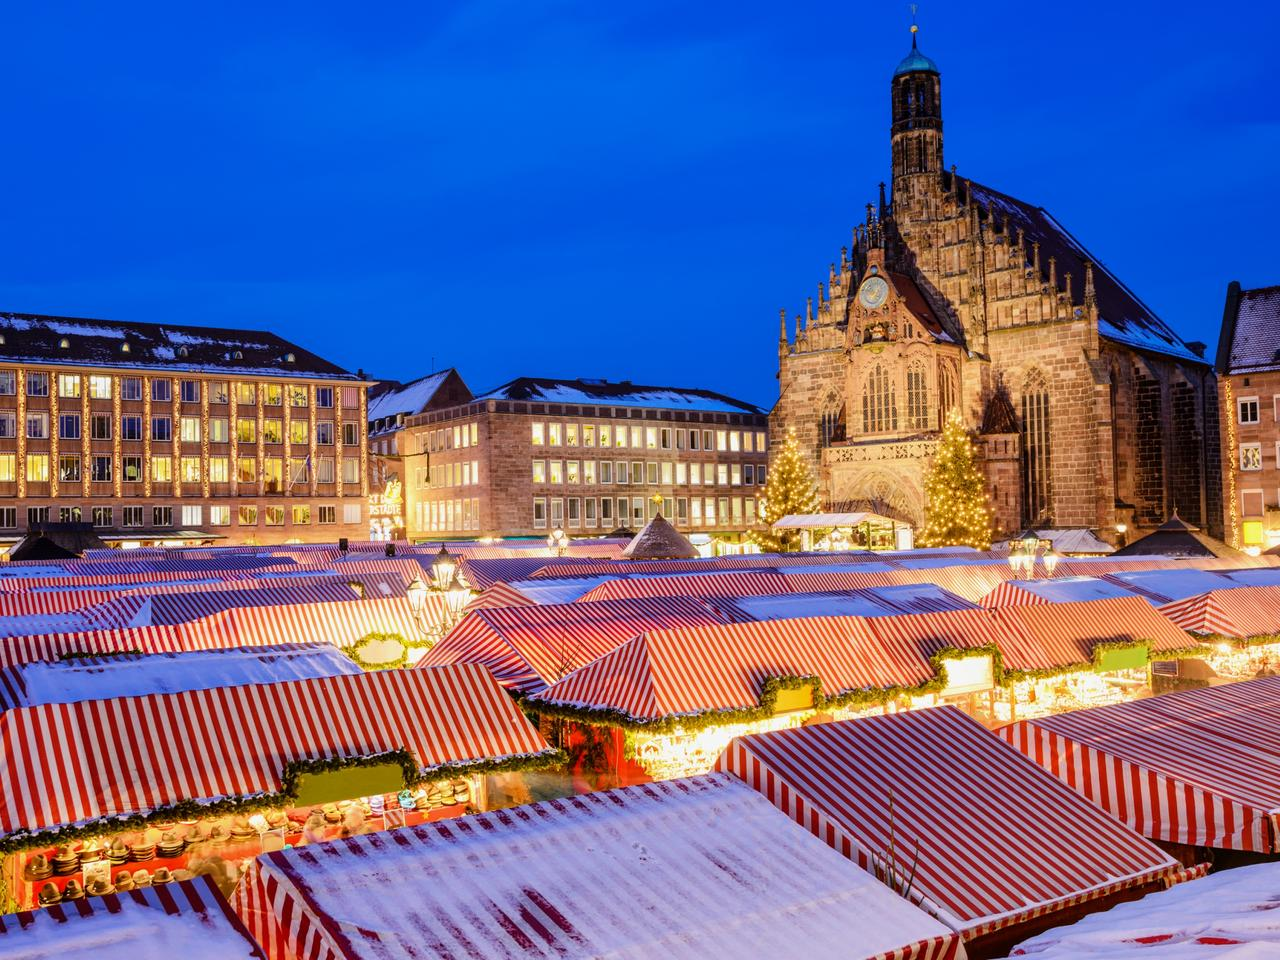 View over the Nürnberger Christmas Market